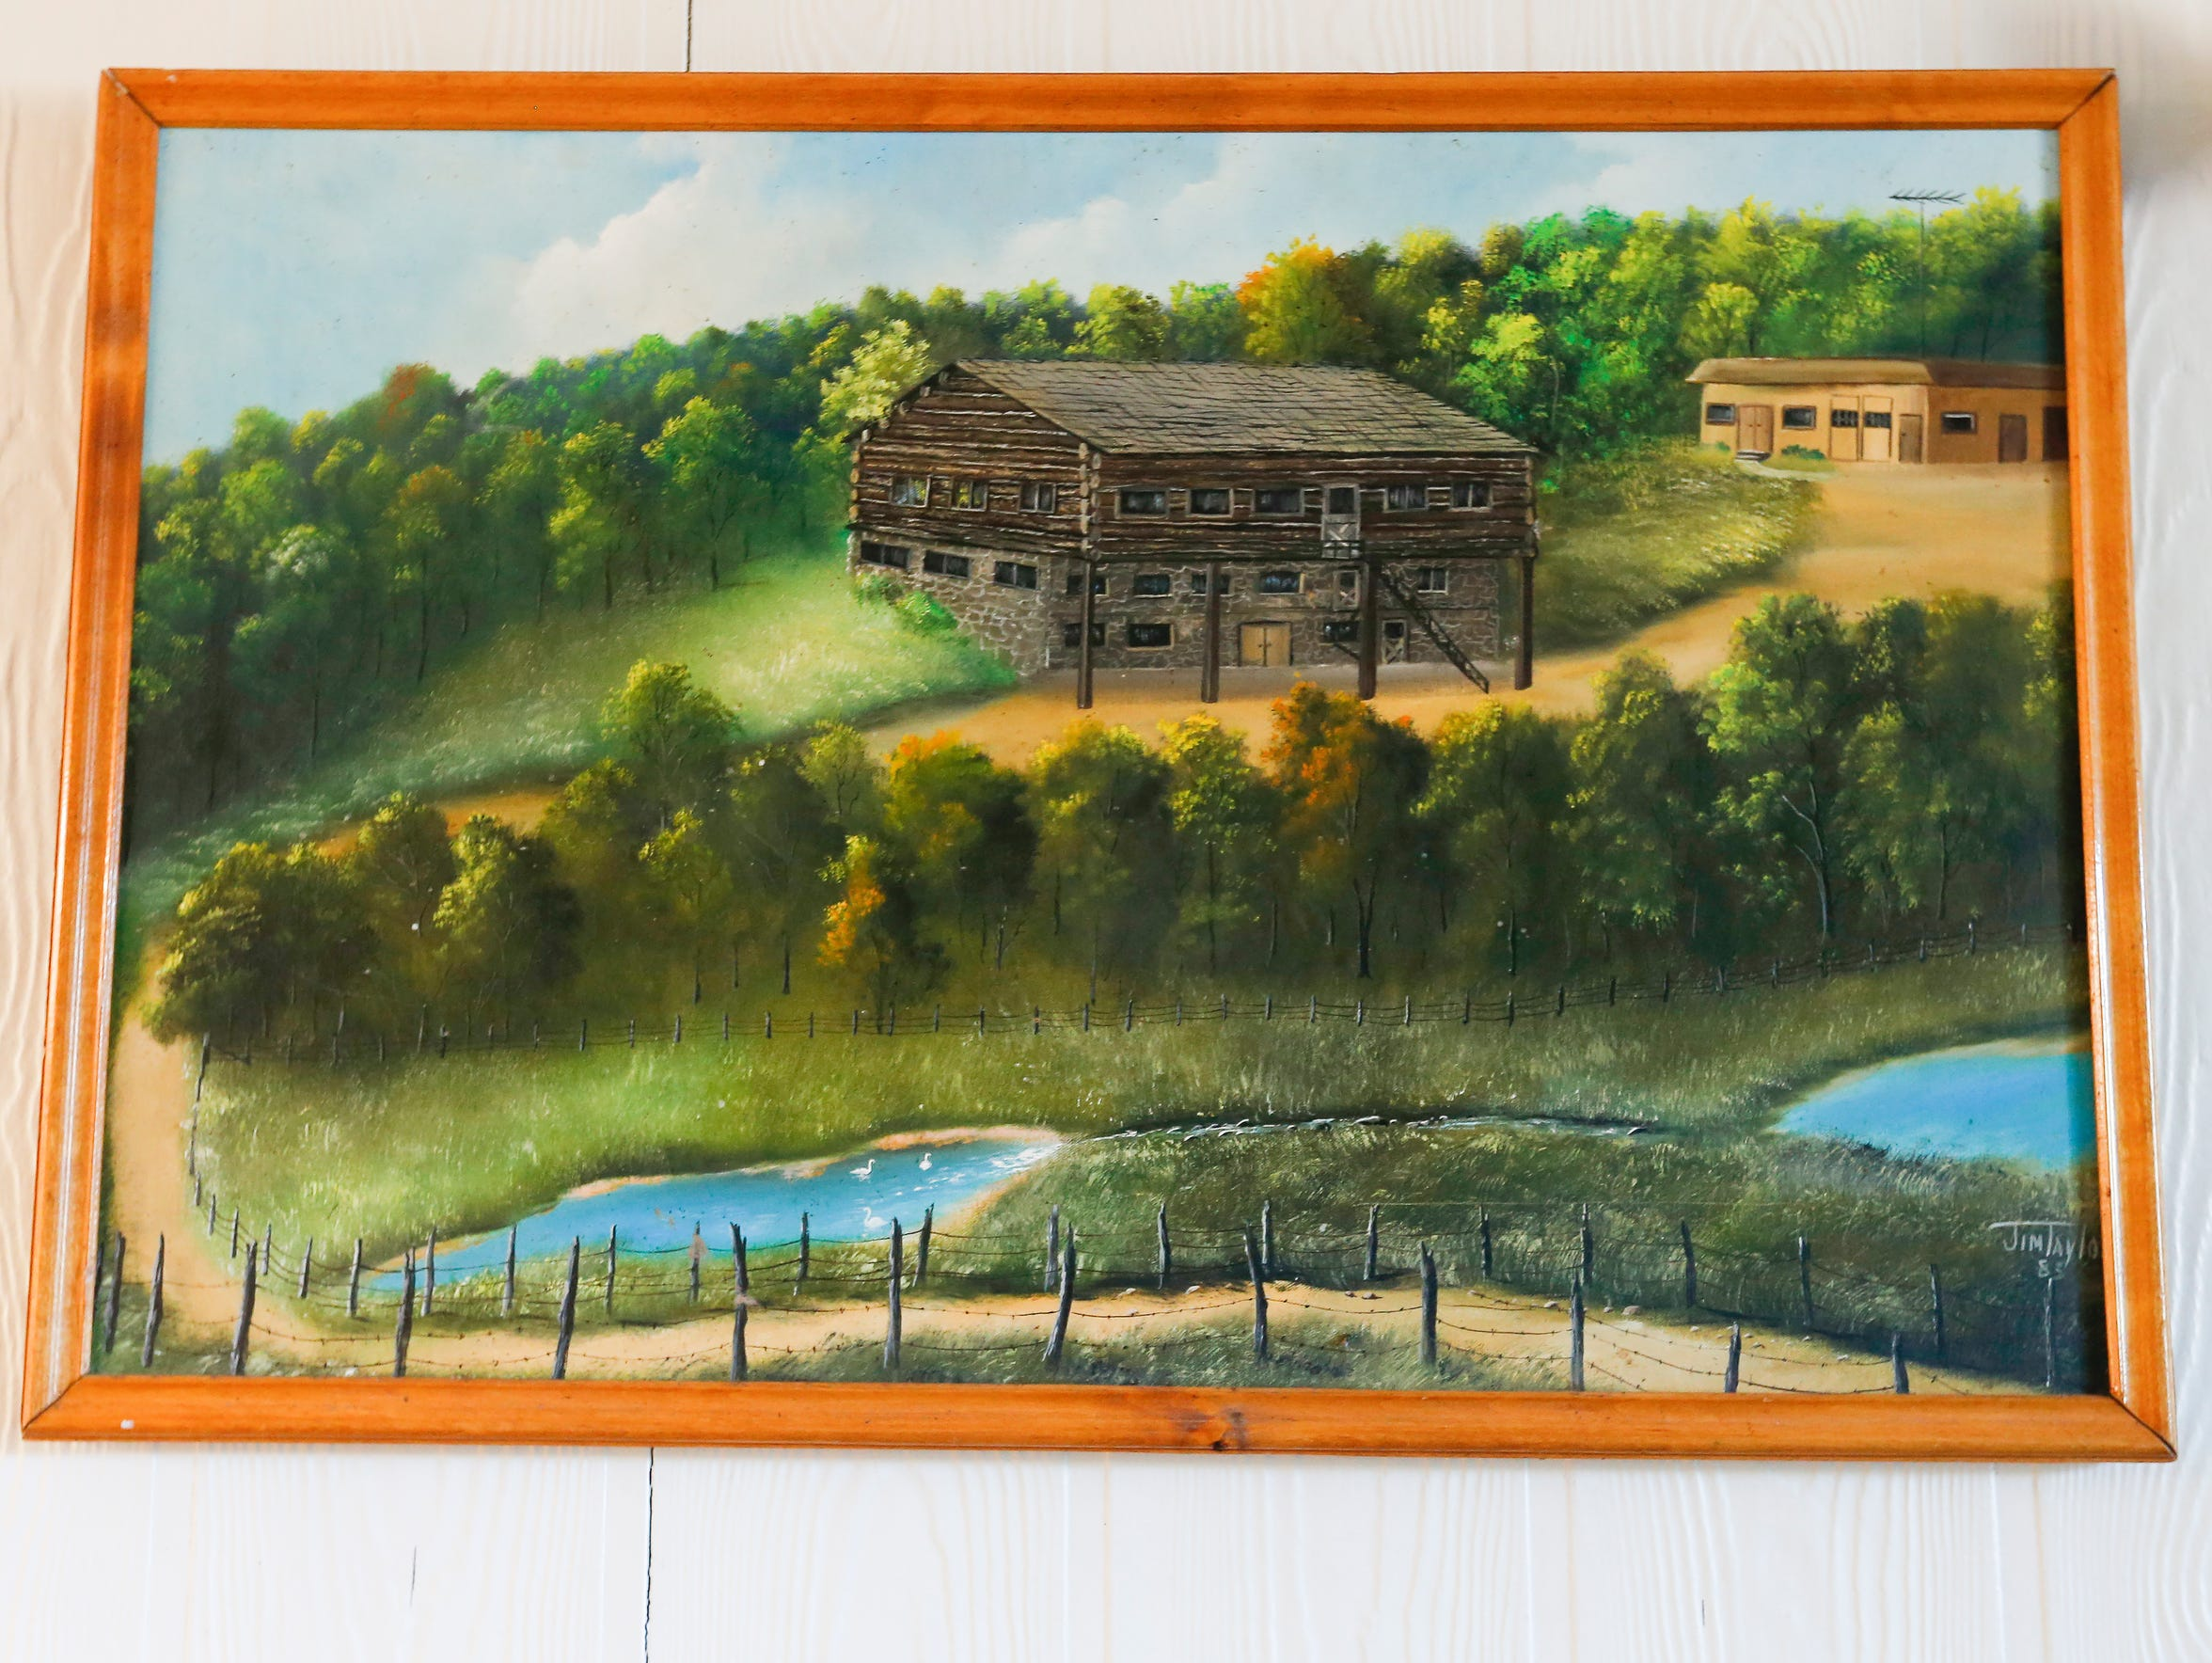 A painting hangs near the dining room at the Lives